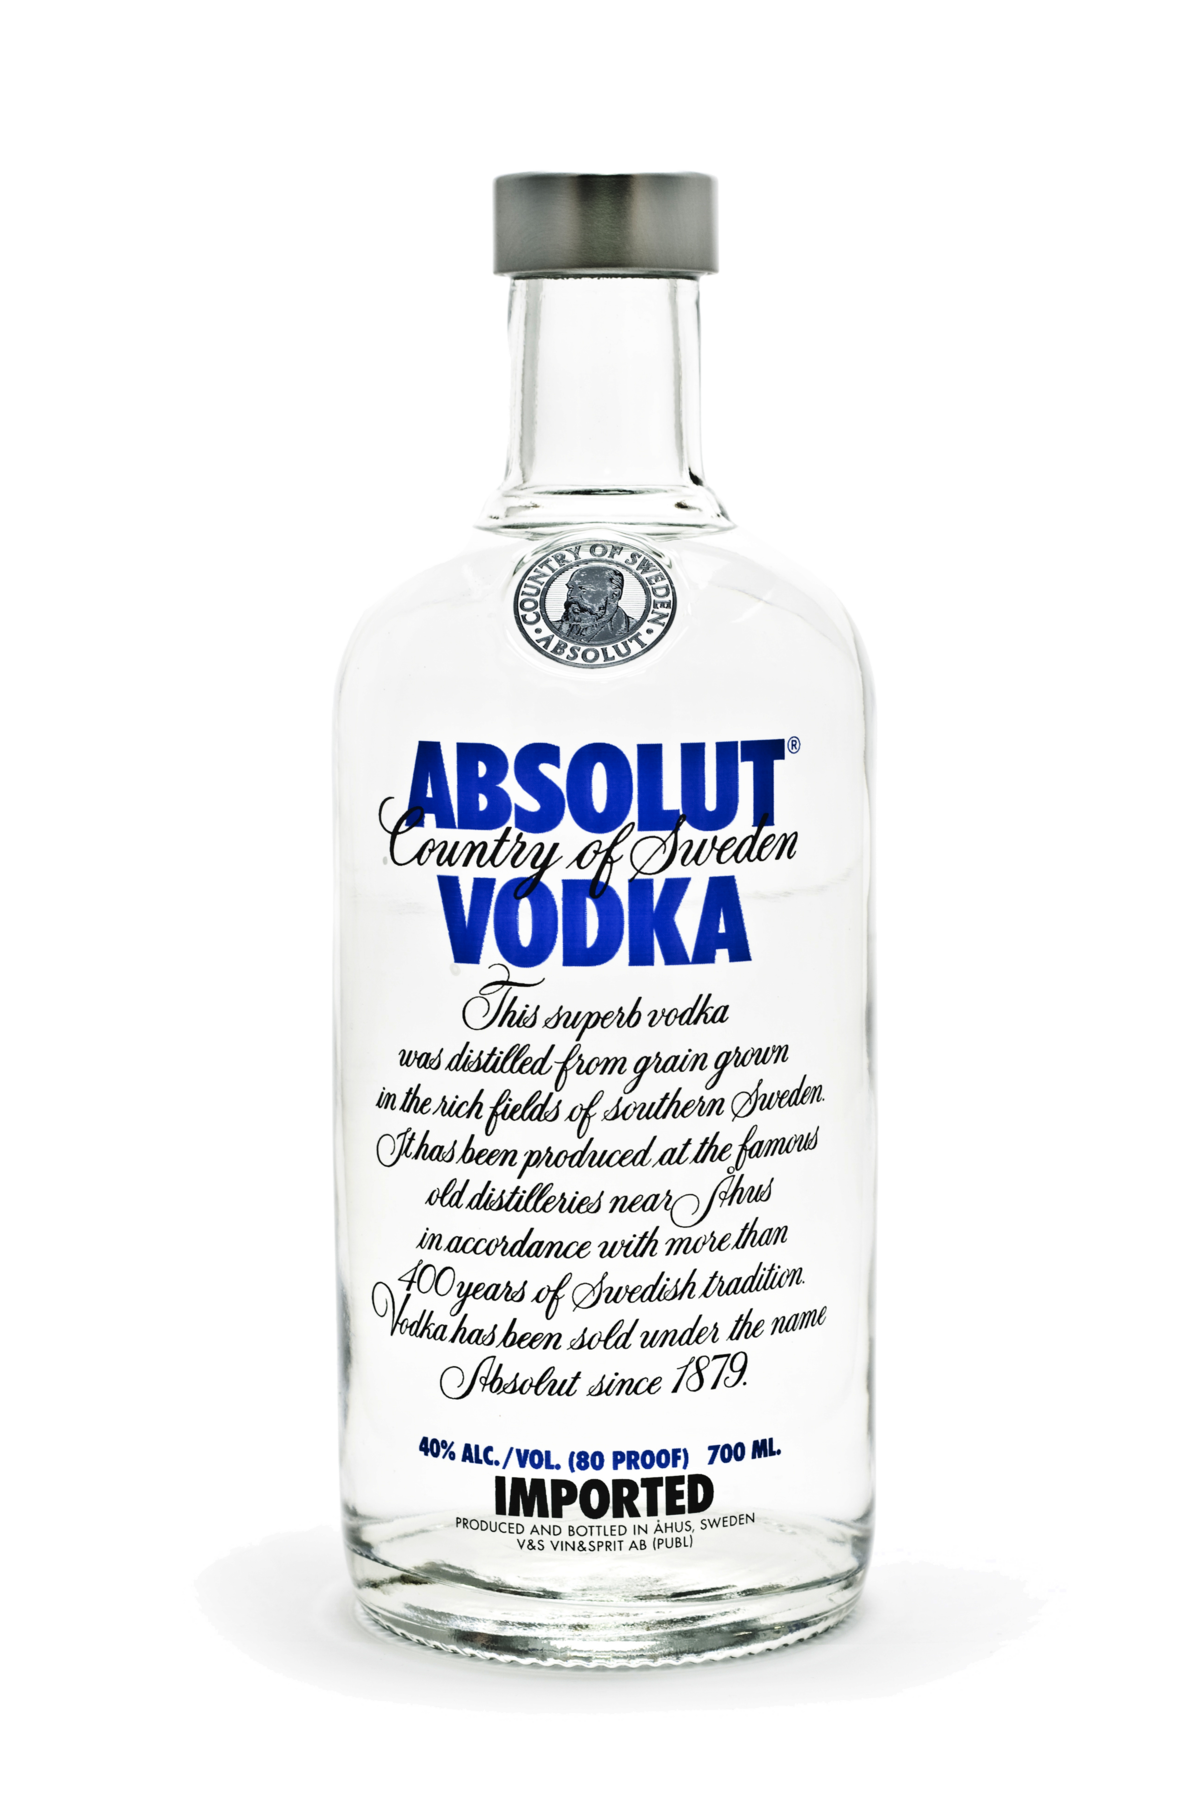 Absolut Vodka Wikipedia